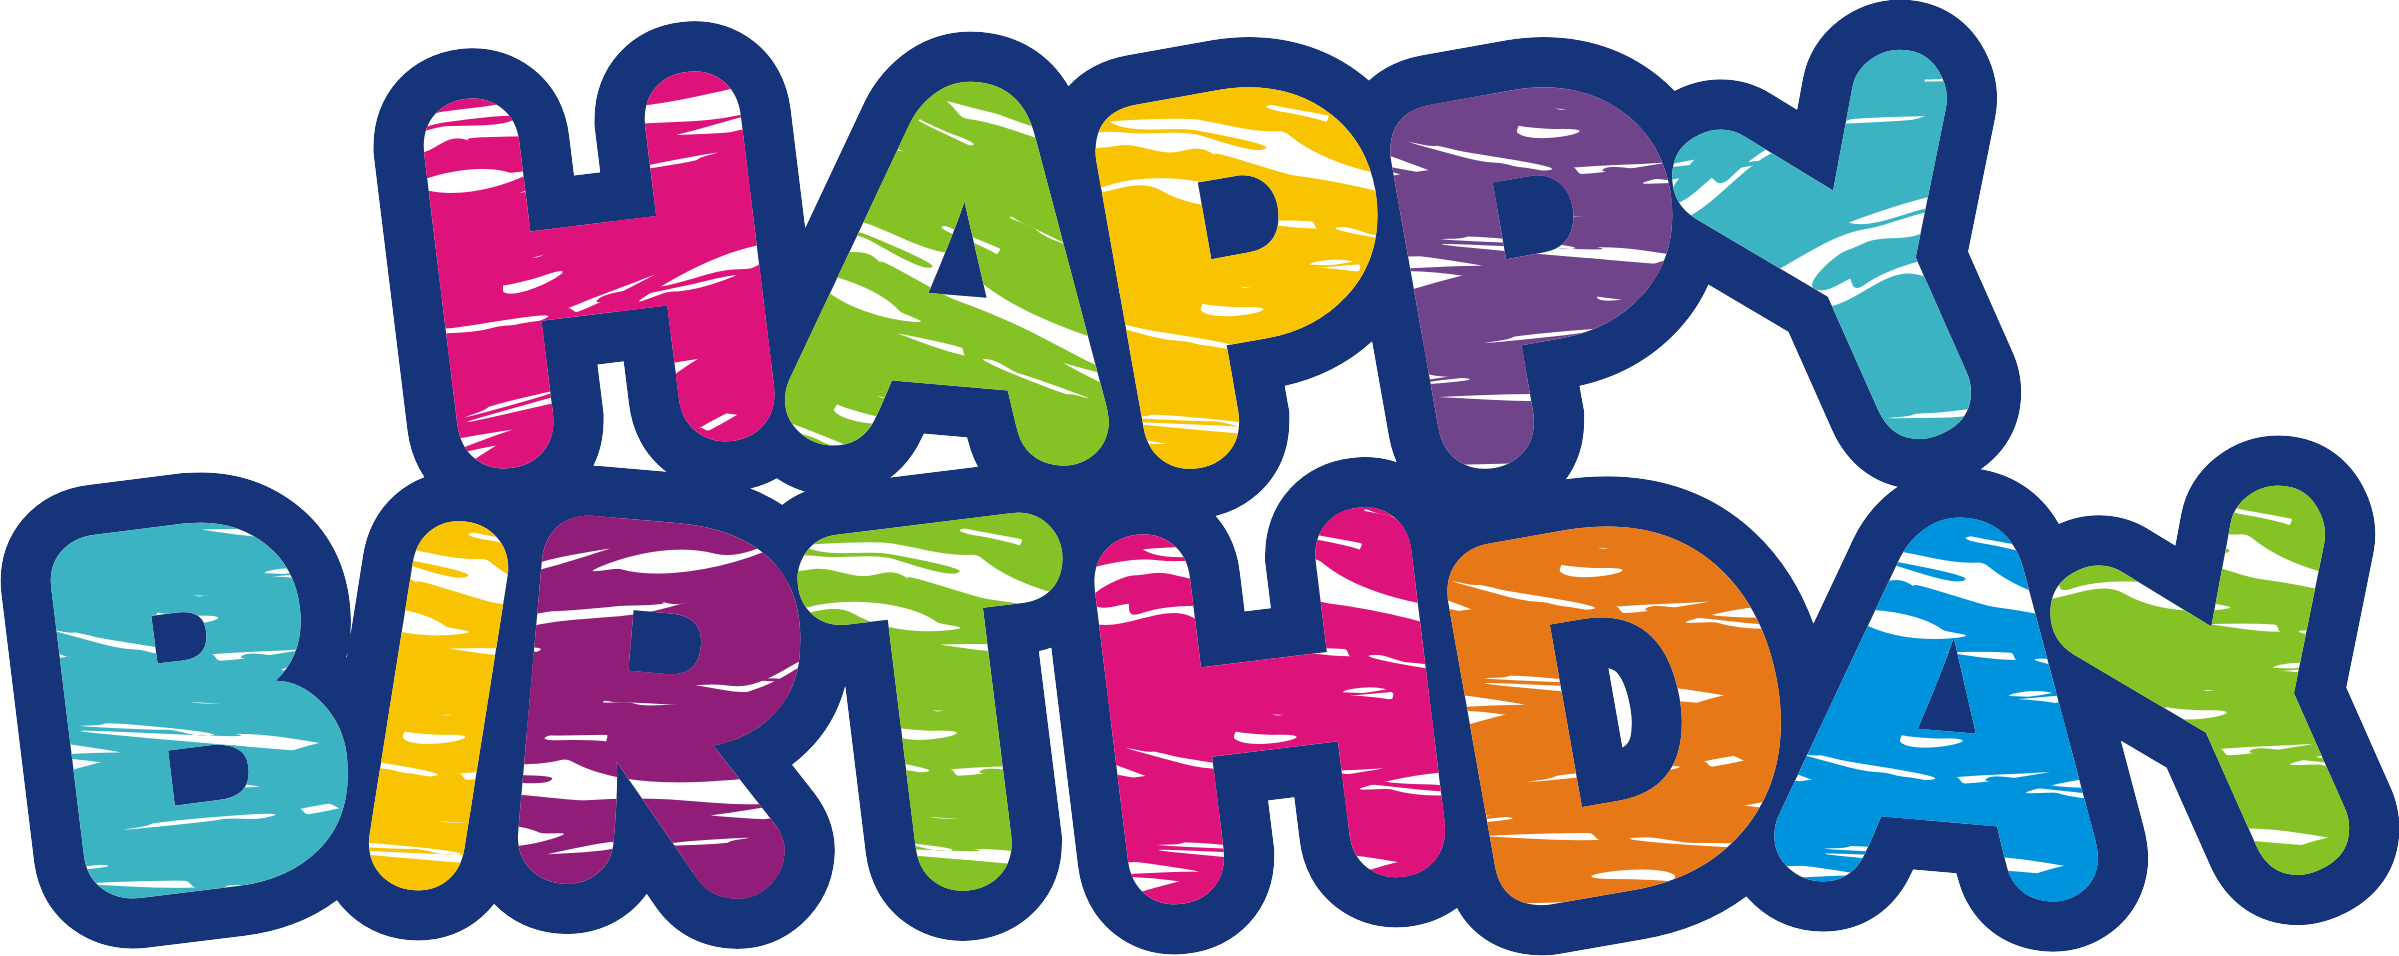 Happy Birthday Daughter Png - Pin by pngsector on Happy Birthday Transparent PNG image & Clipart ...